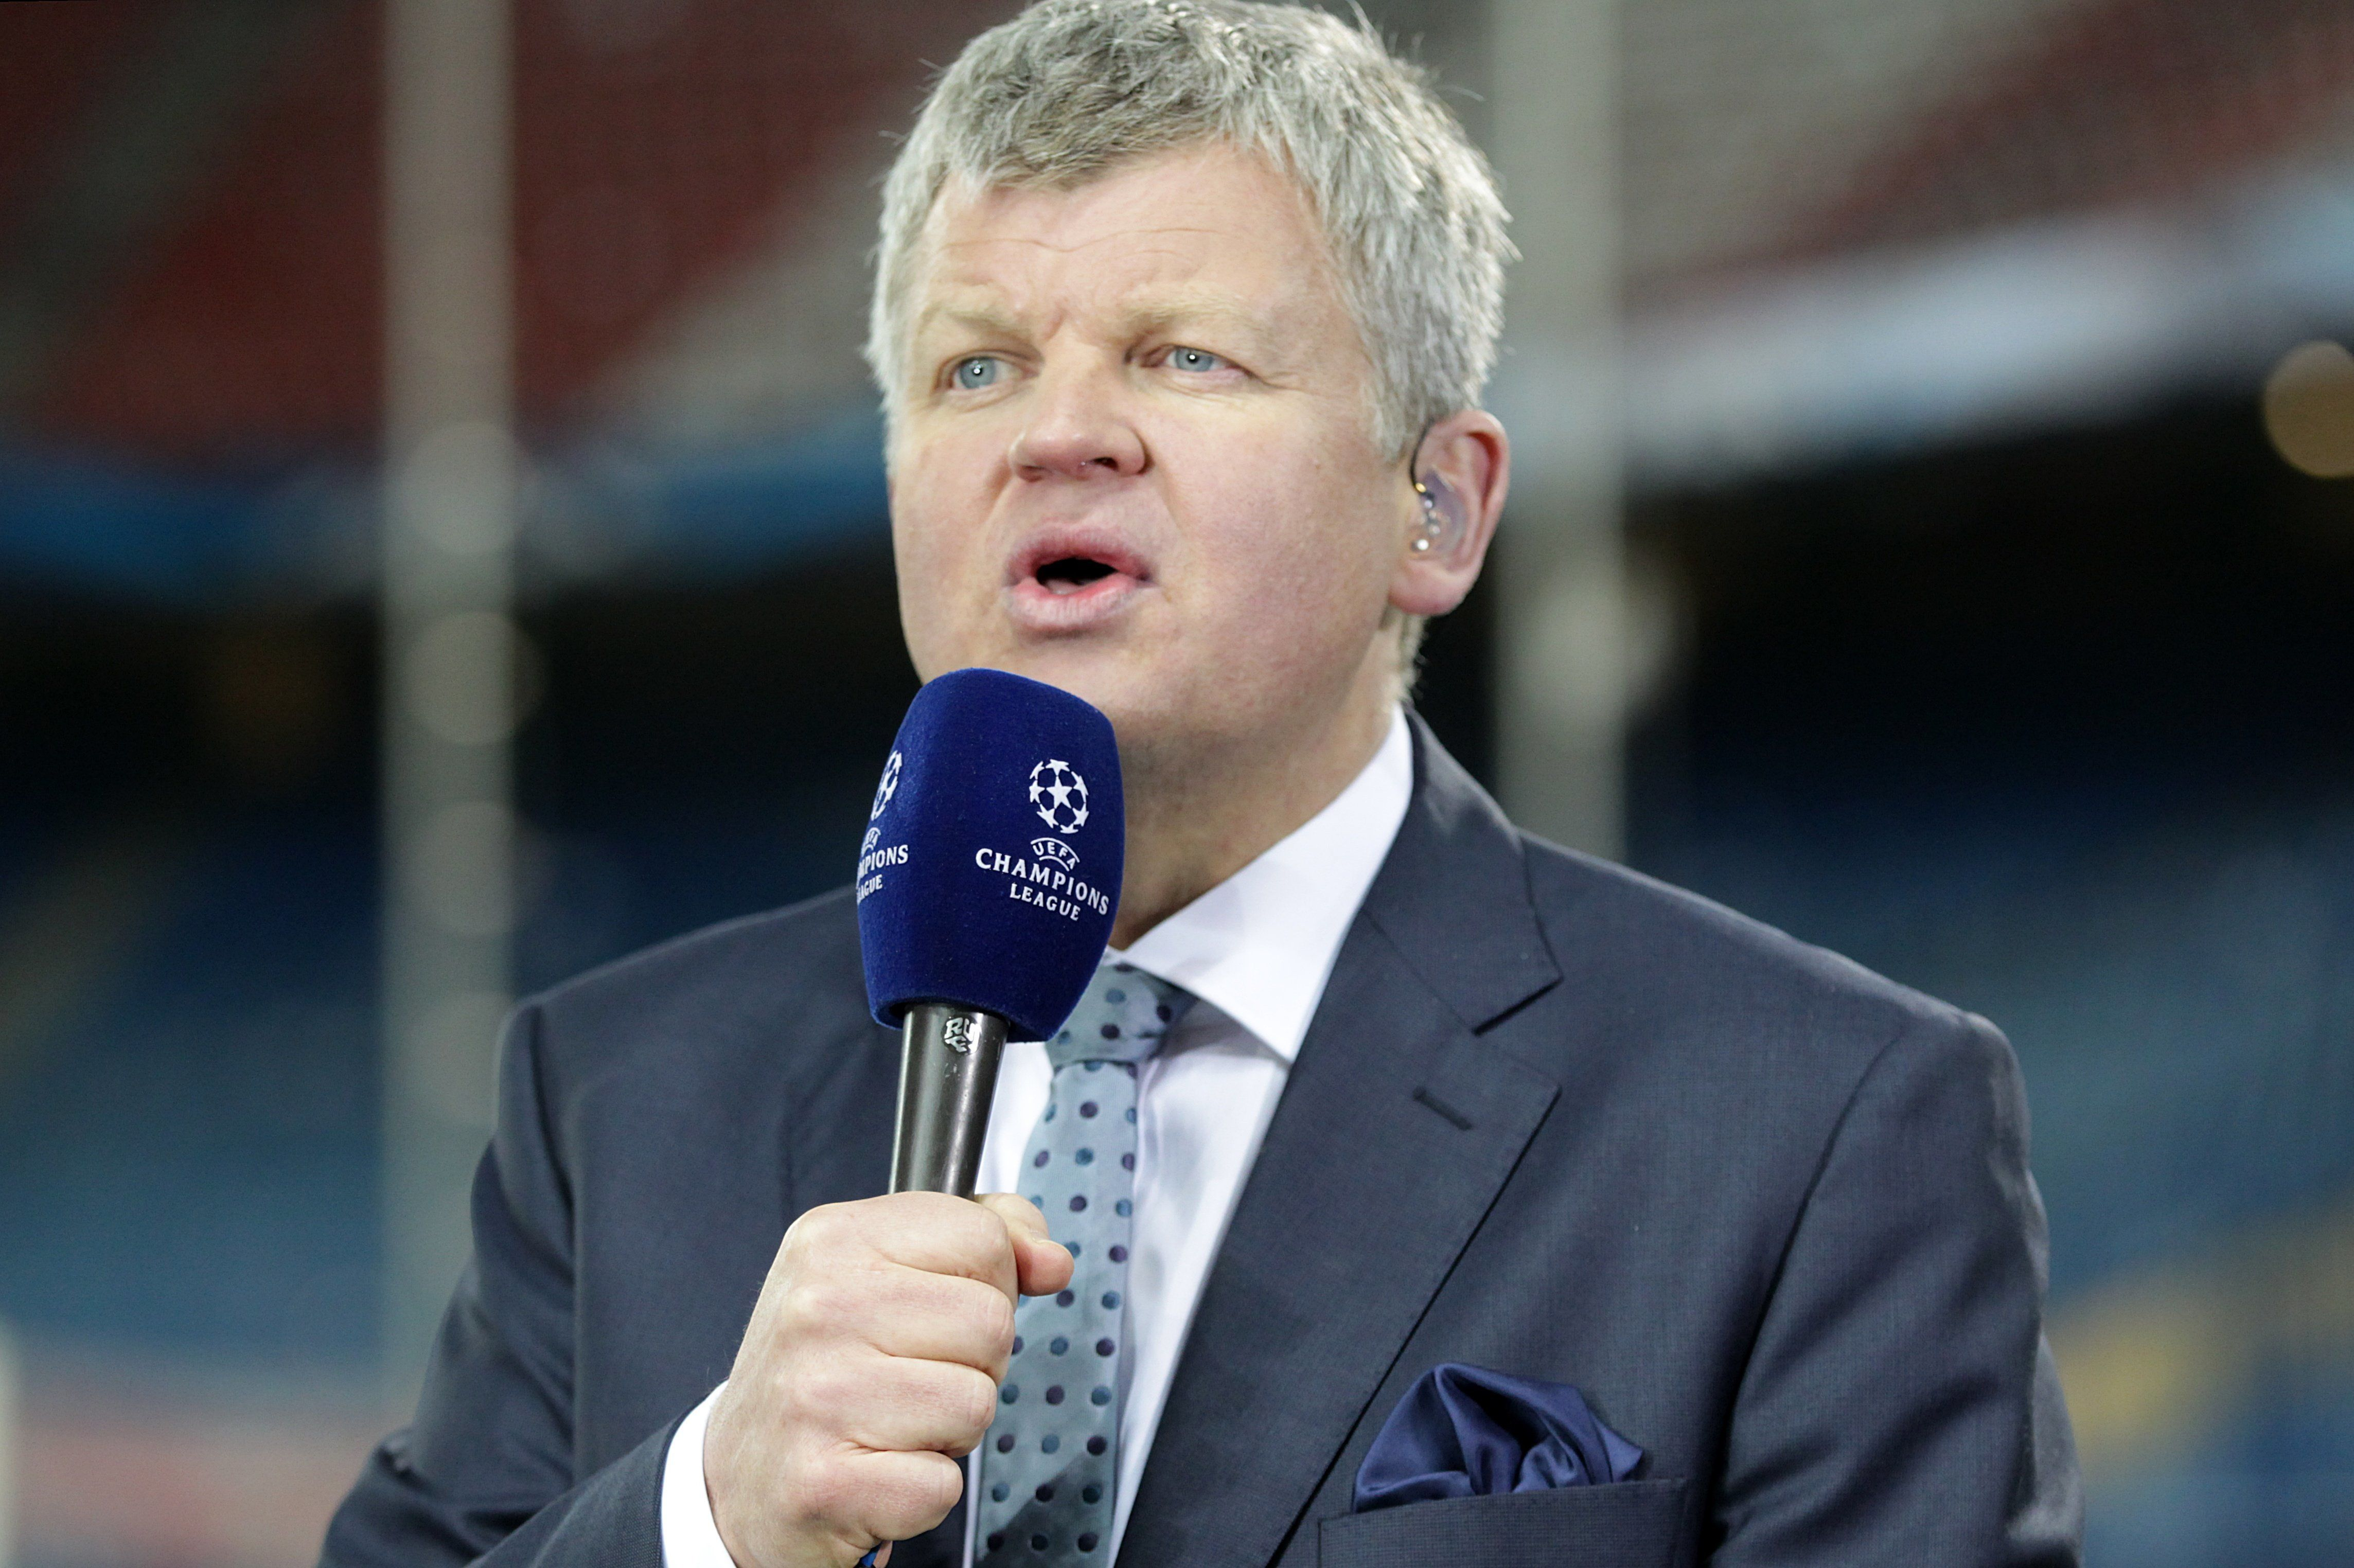 Adrian Chiles Reveals He 'Self-Medicated' With Alcohol After Anxiety Left Him Struggling To Read An